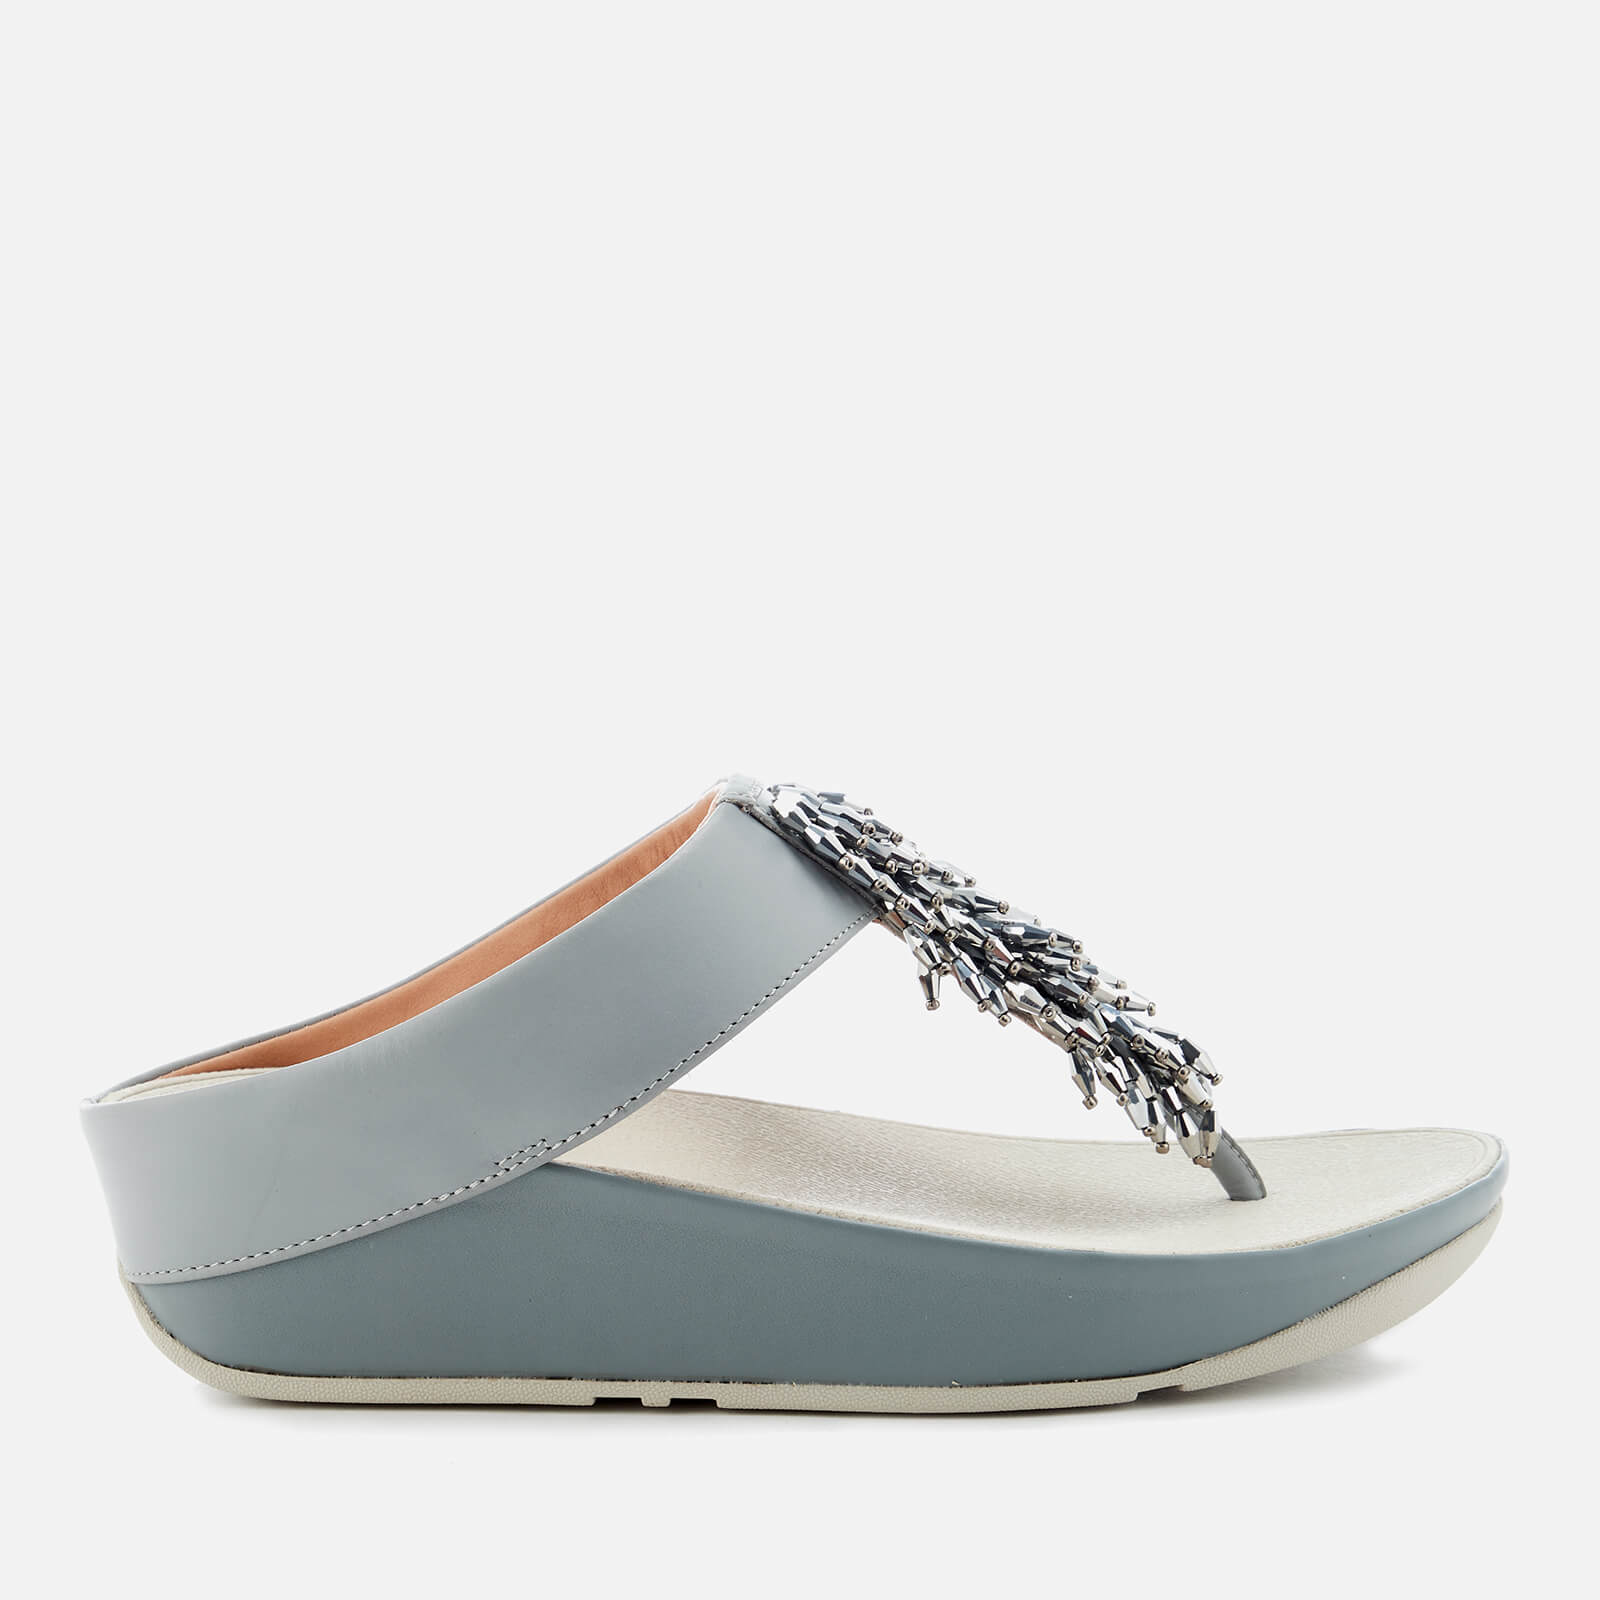 9ba144bc2ab3 FitFlop Women s Rumba Crystal Toe Post Sandals - Dove Blue Womens  Accessories